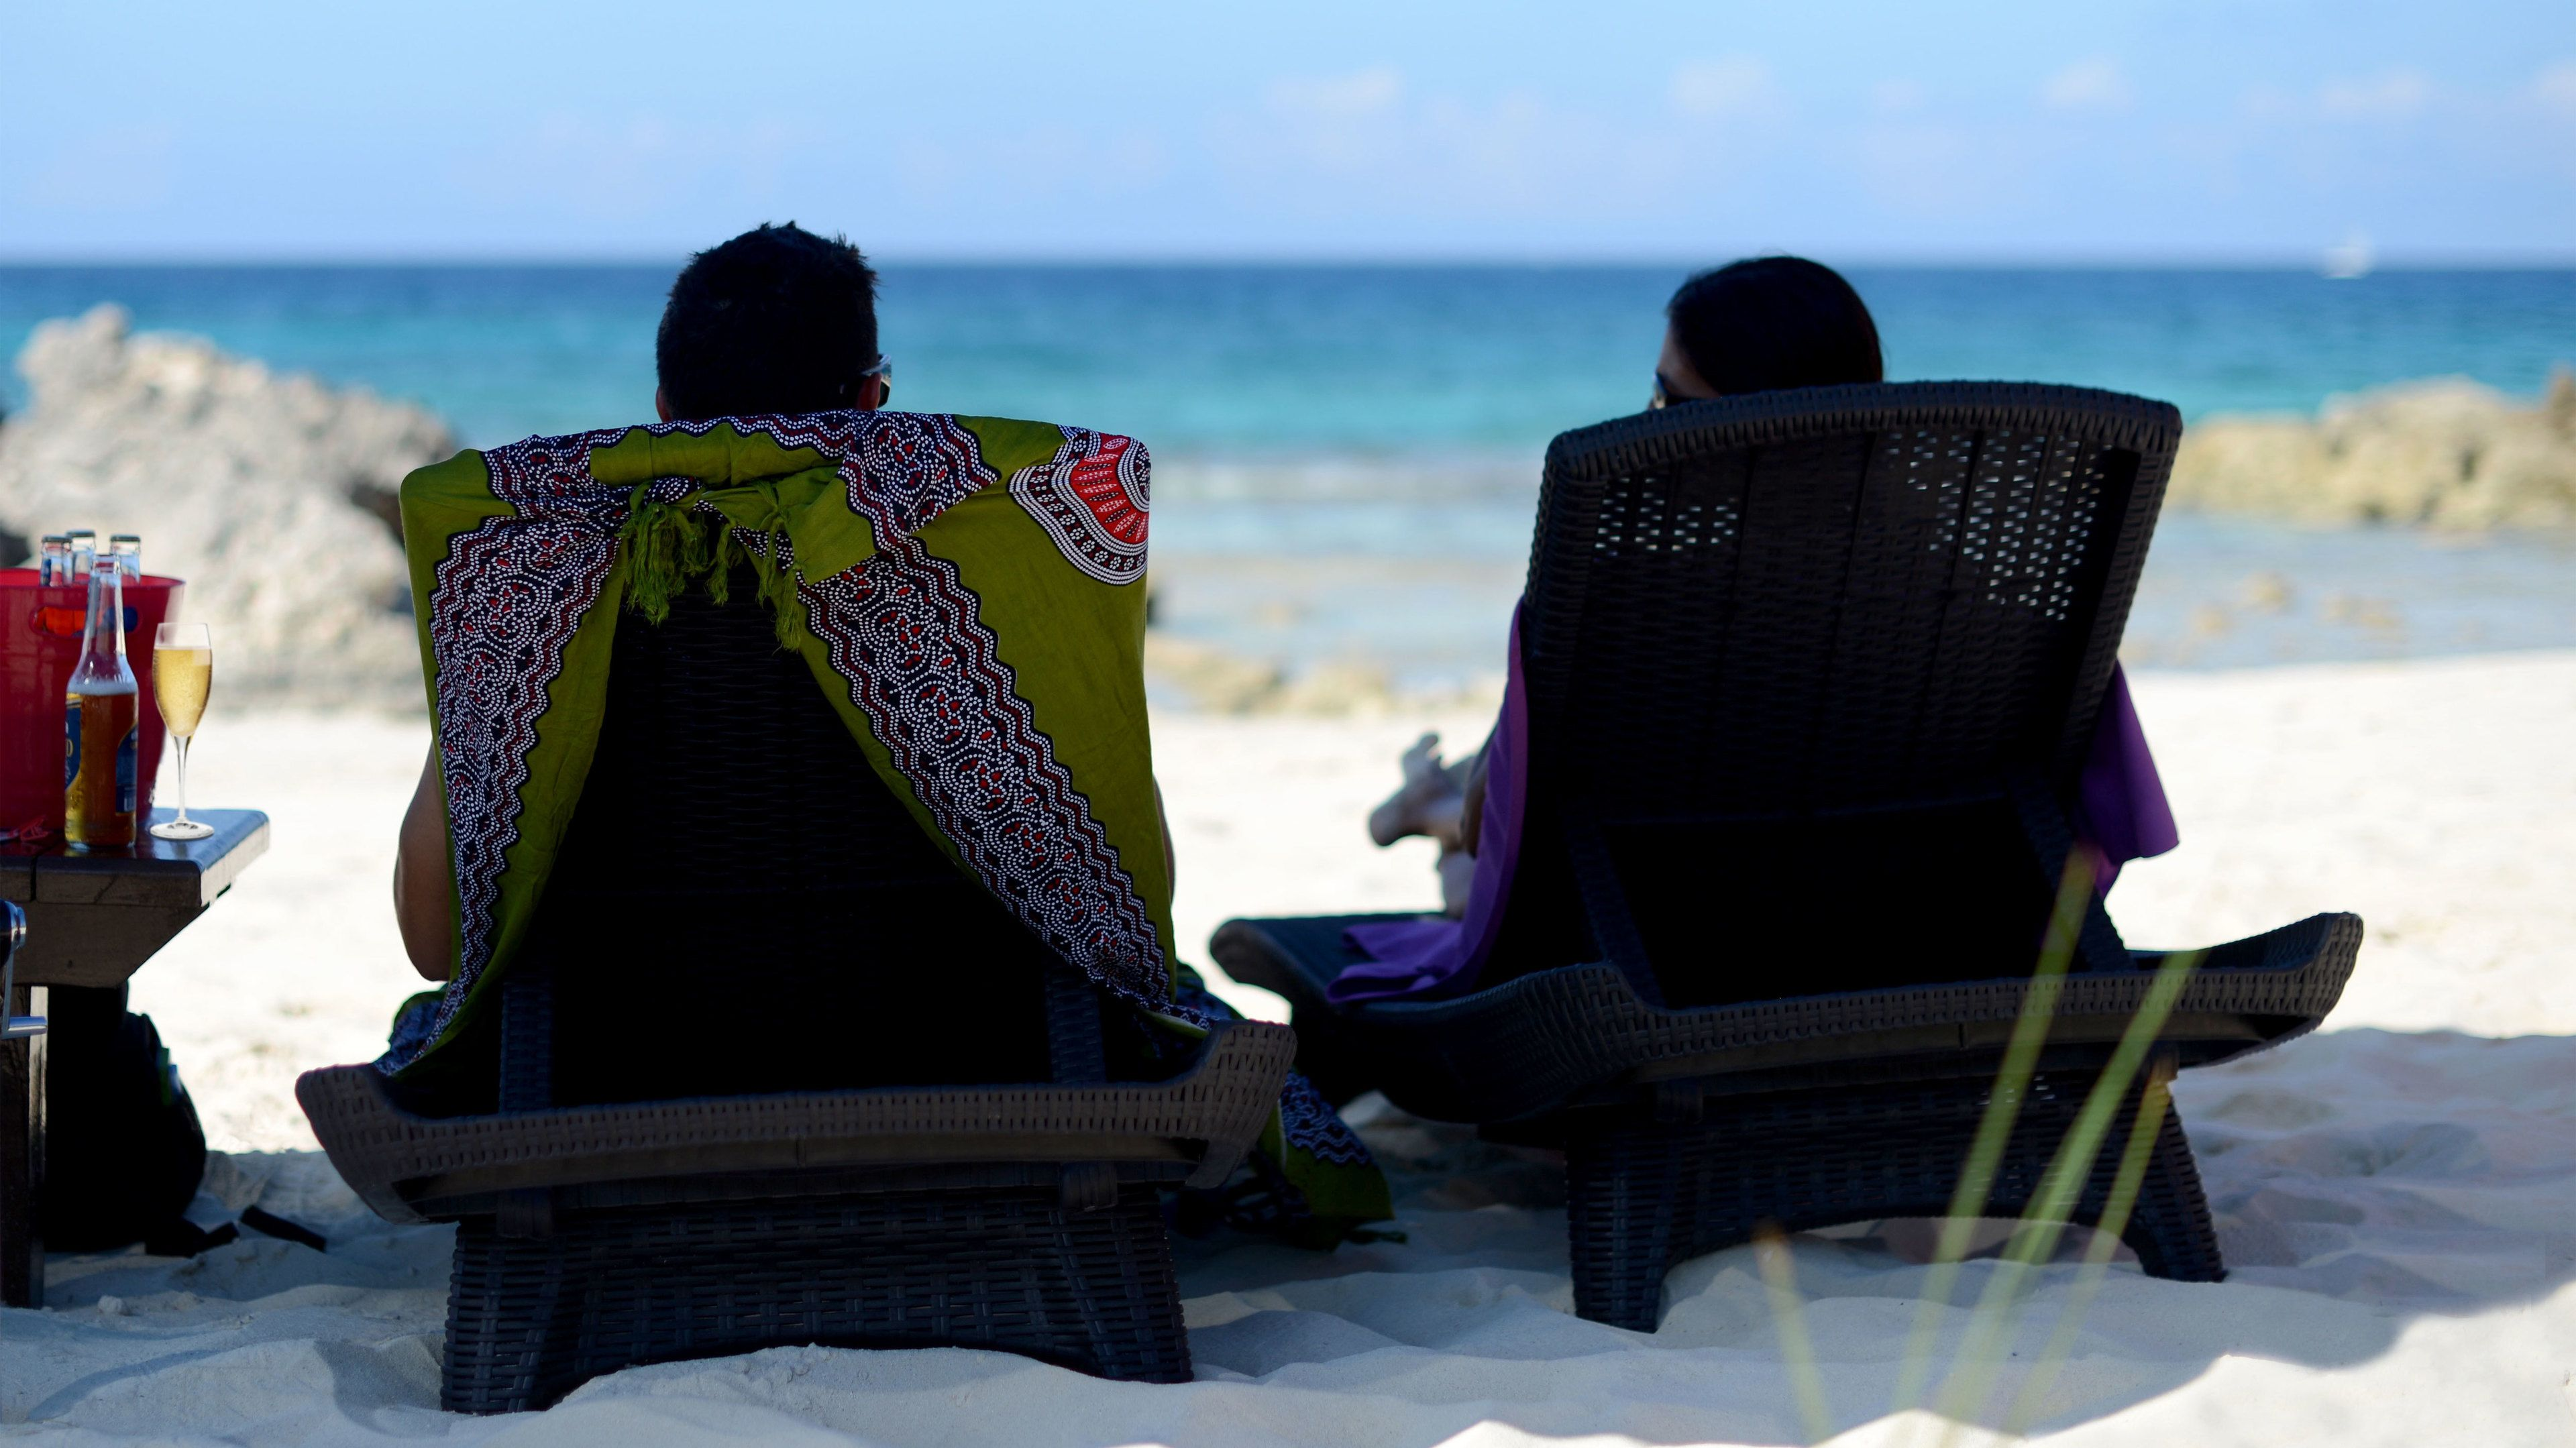 Couple lounging in chaise lounges on a beach in Grand Bahamas